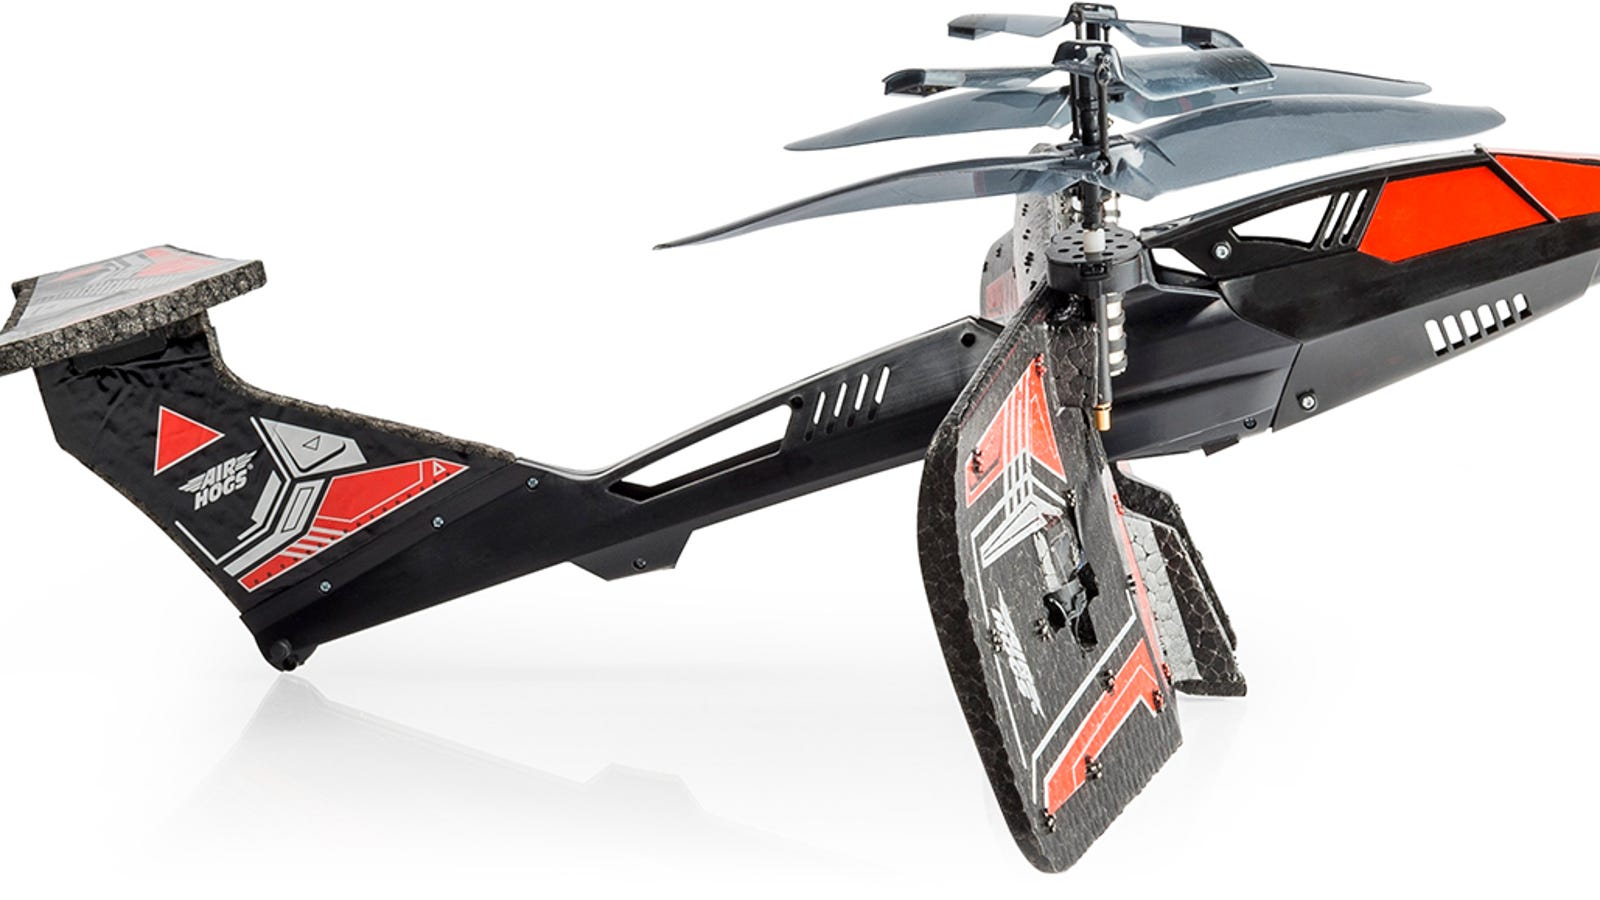 Tilting Wings Let This New Air Hogs RC Plane Hover Like a ...